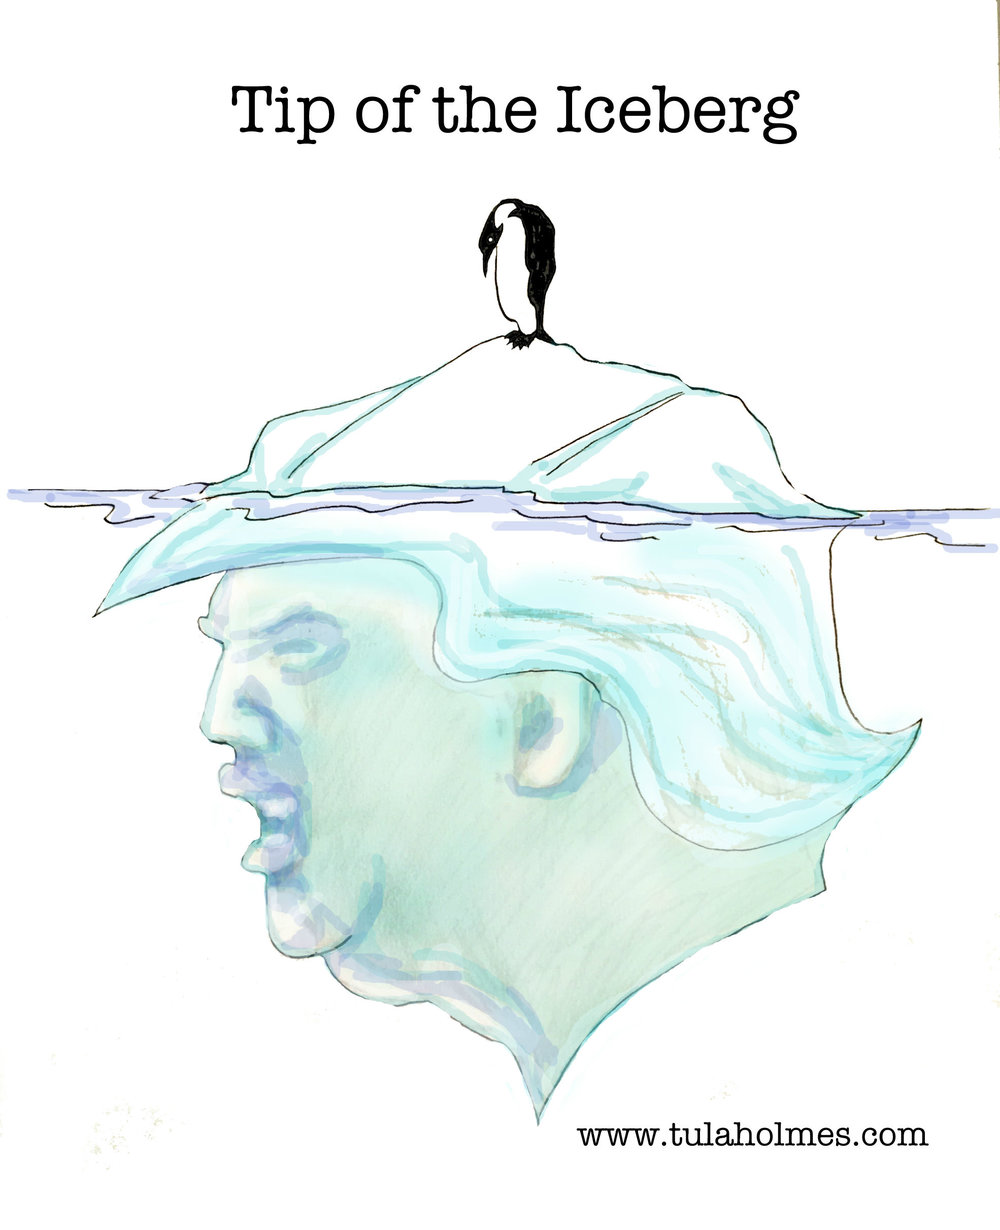 Tip of the Iceberg- Copyright 2019